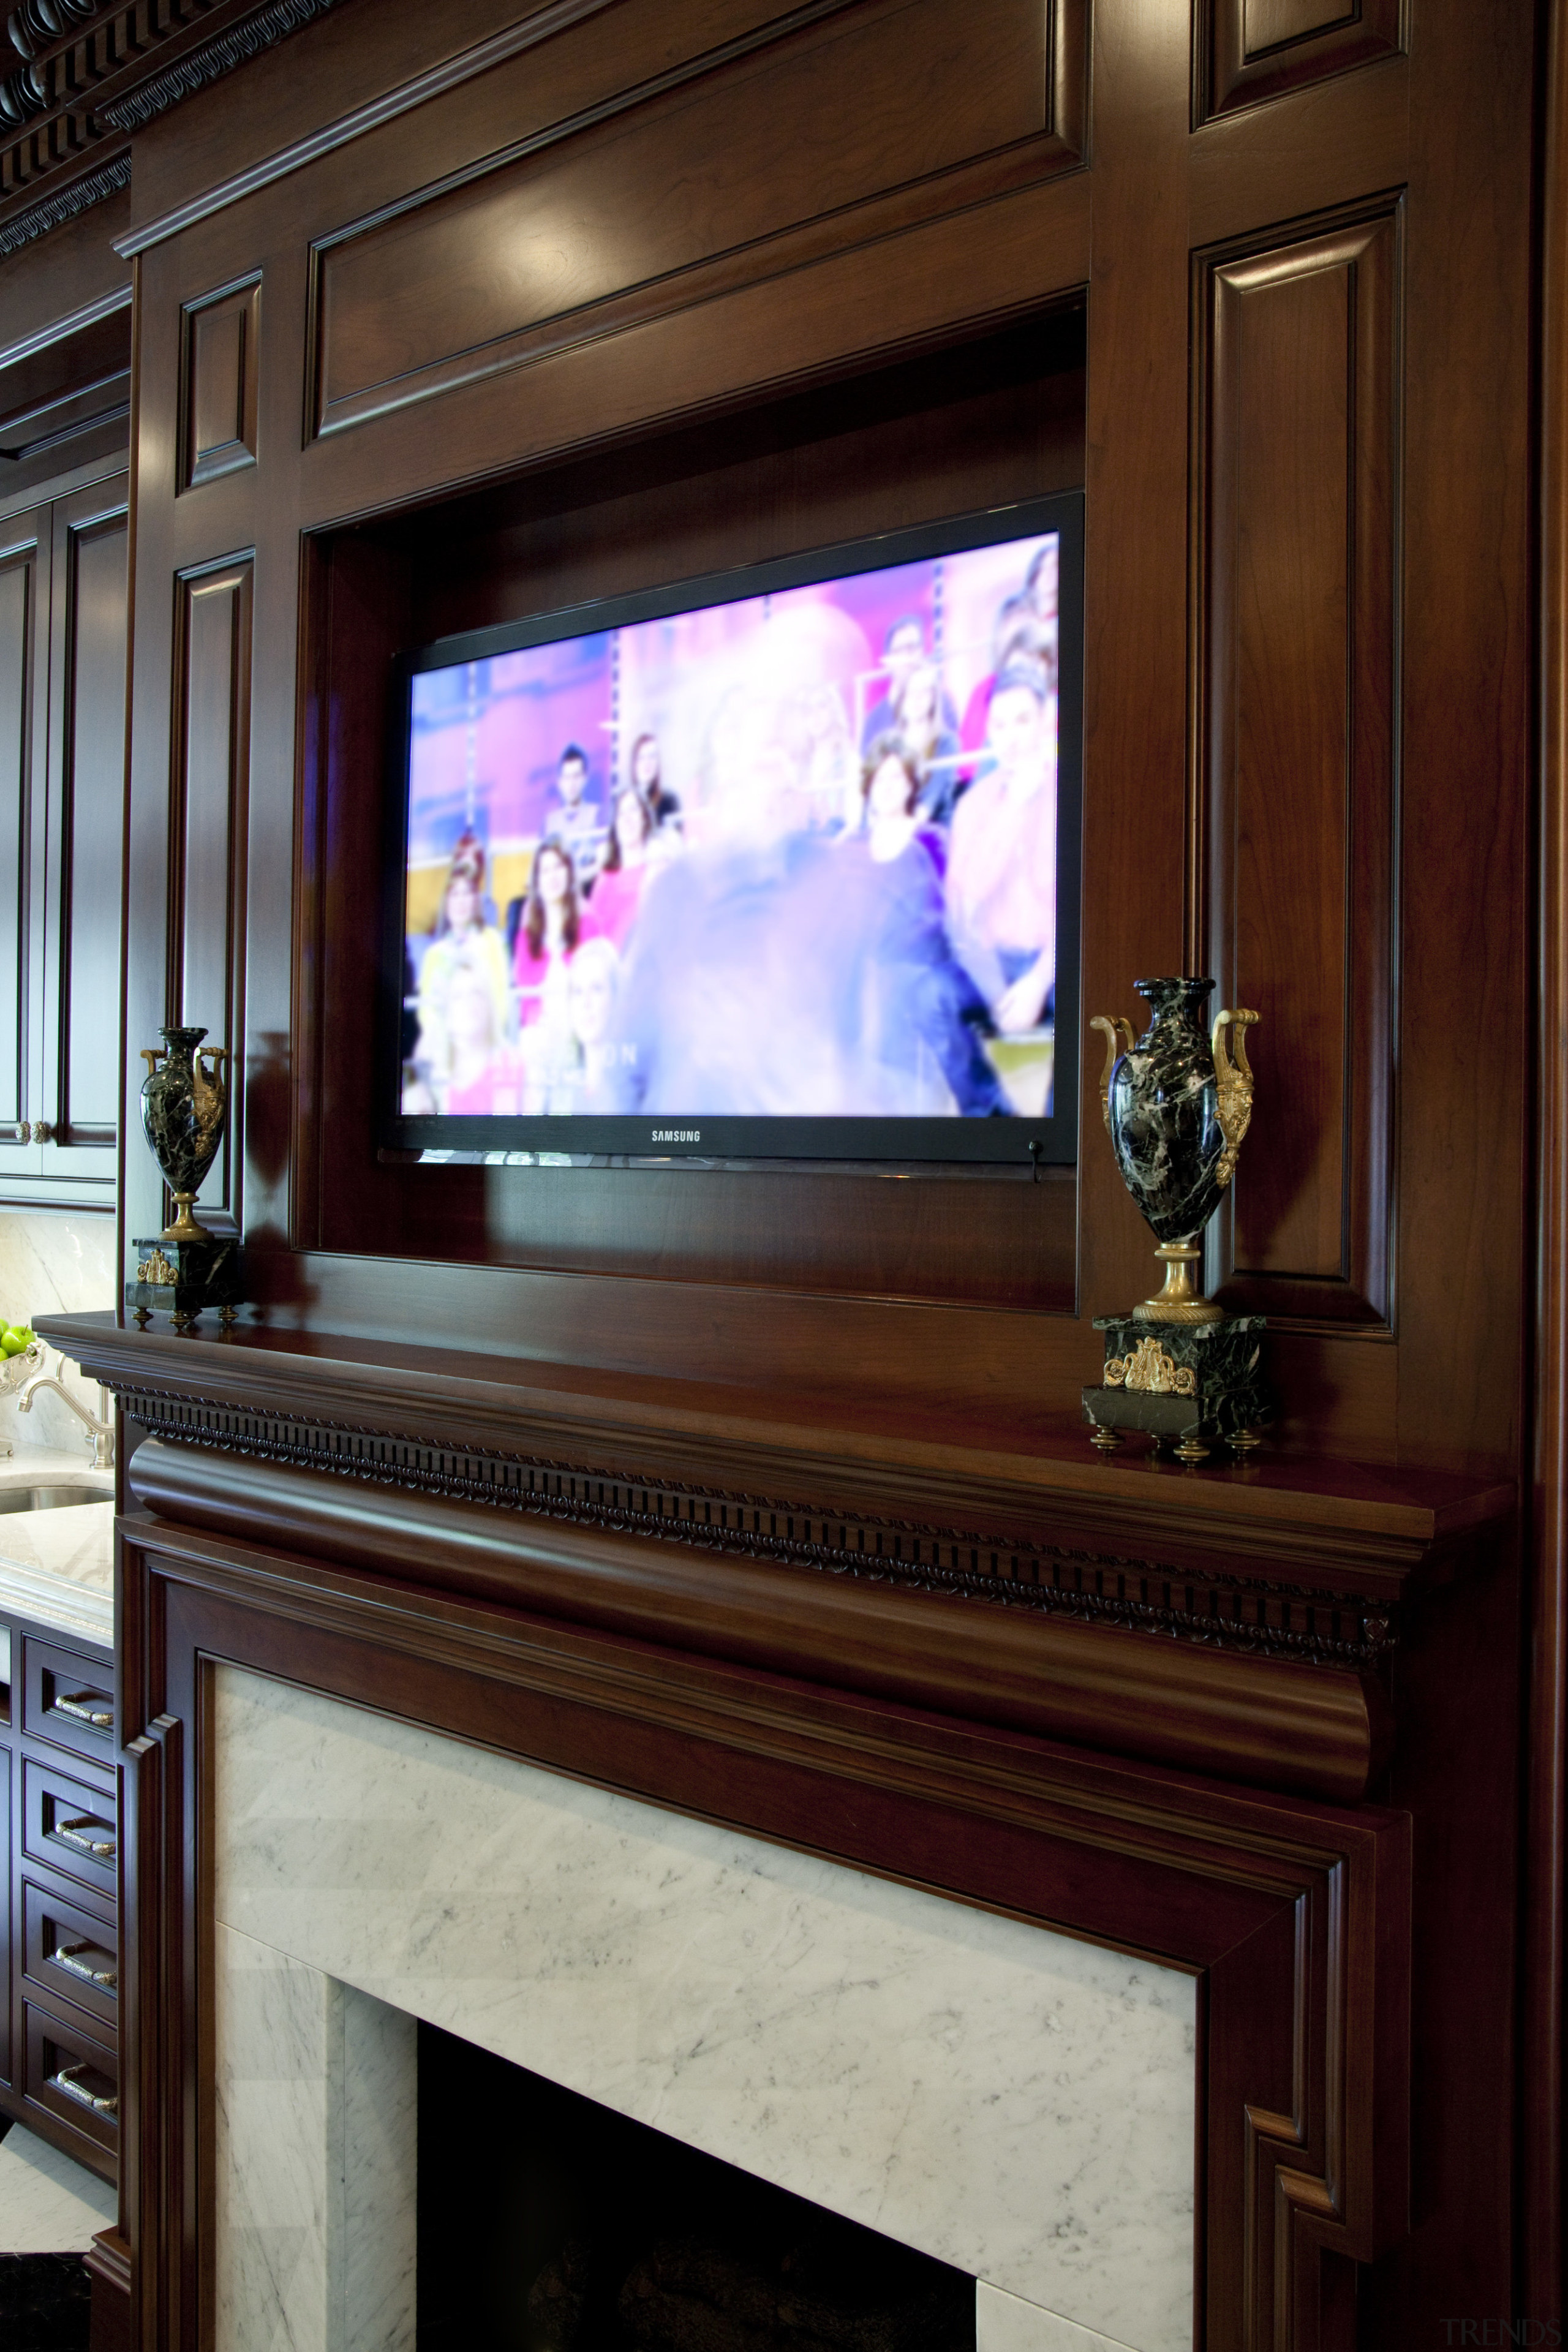 Now you see it, now you dont. A display device, entertainment, furniture, home, interior design, red